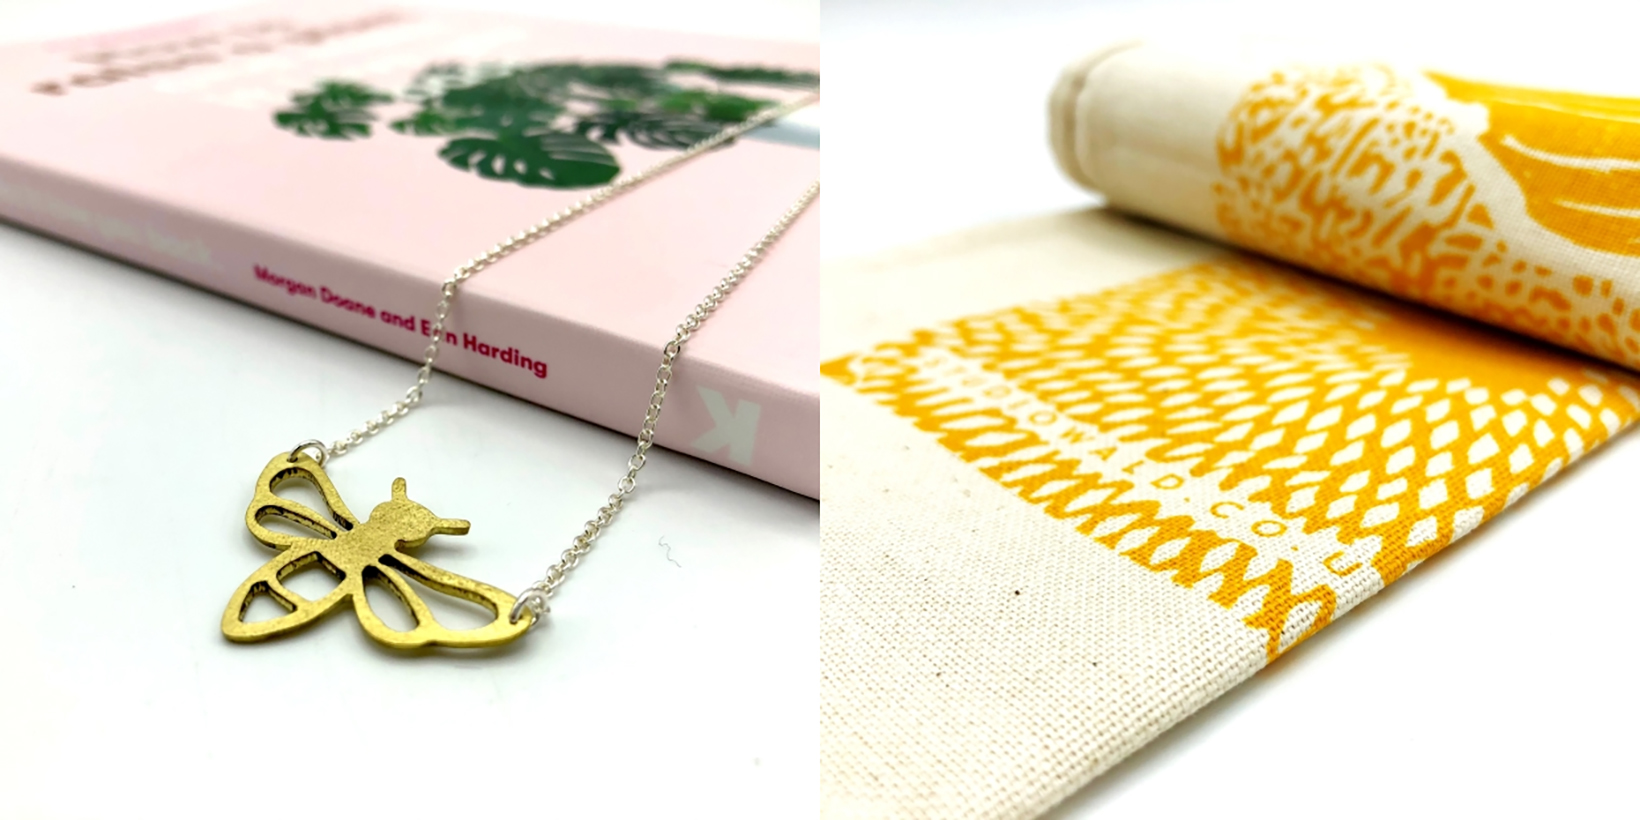 An item of bee-shaped jewlery and a decorative tea towel, gifts available at the Manchester Museum Shop